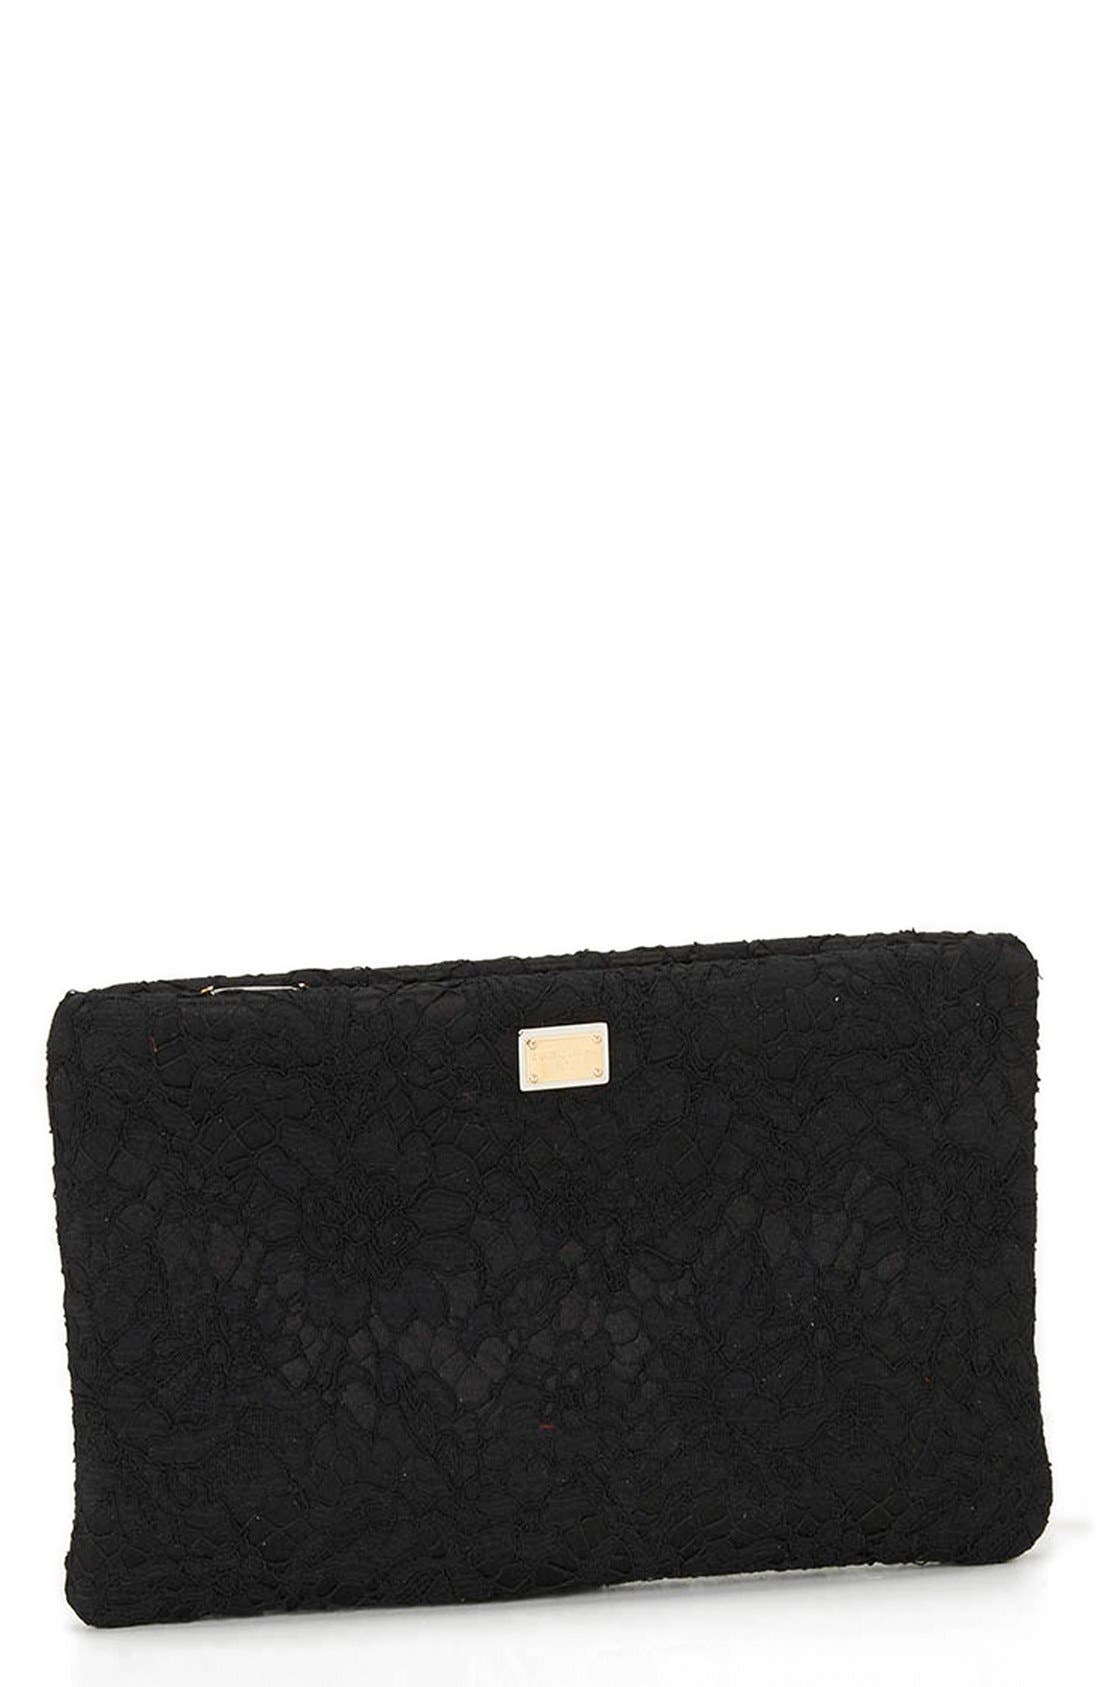 Alternate Image 1 Selected - Dolce&Gabbana Lace Clutch